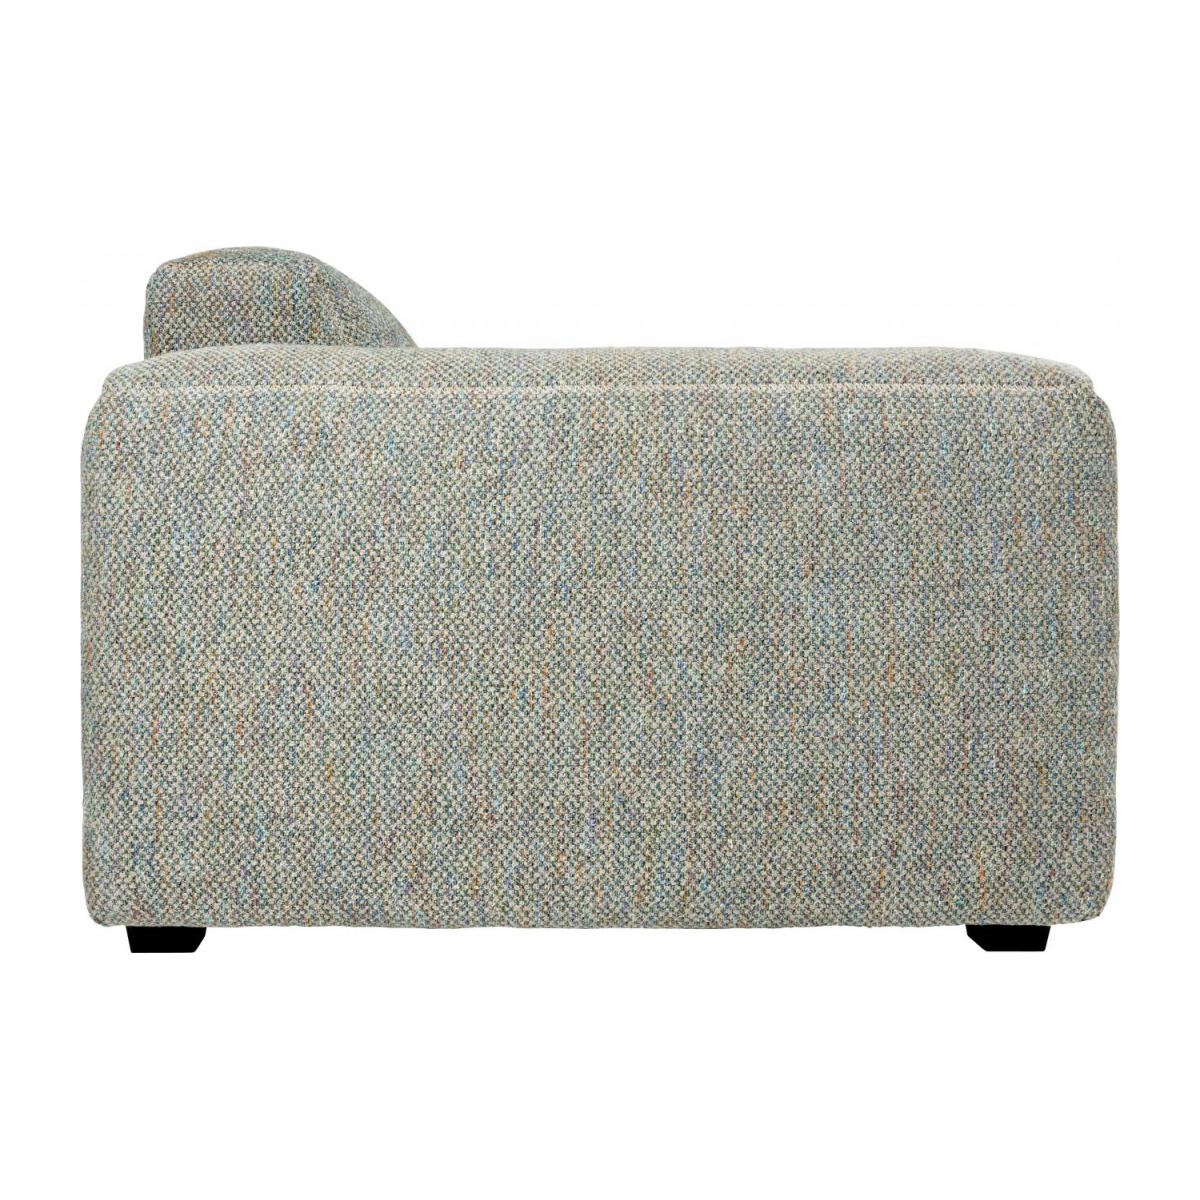 3 seater sofa in Bellagio fabric, organic green n°6